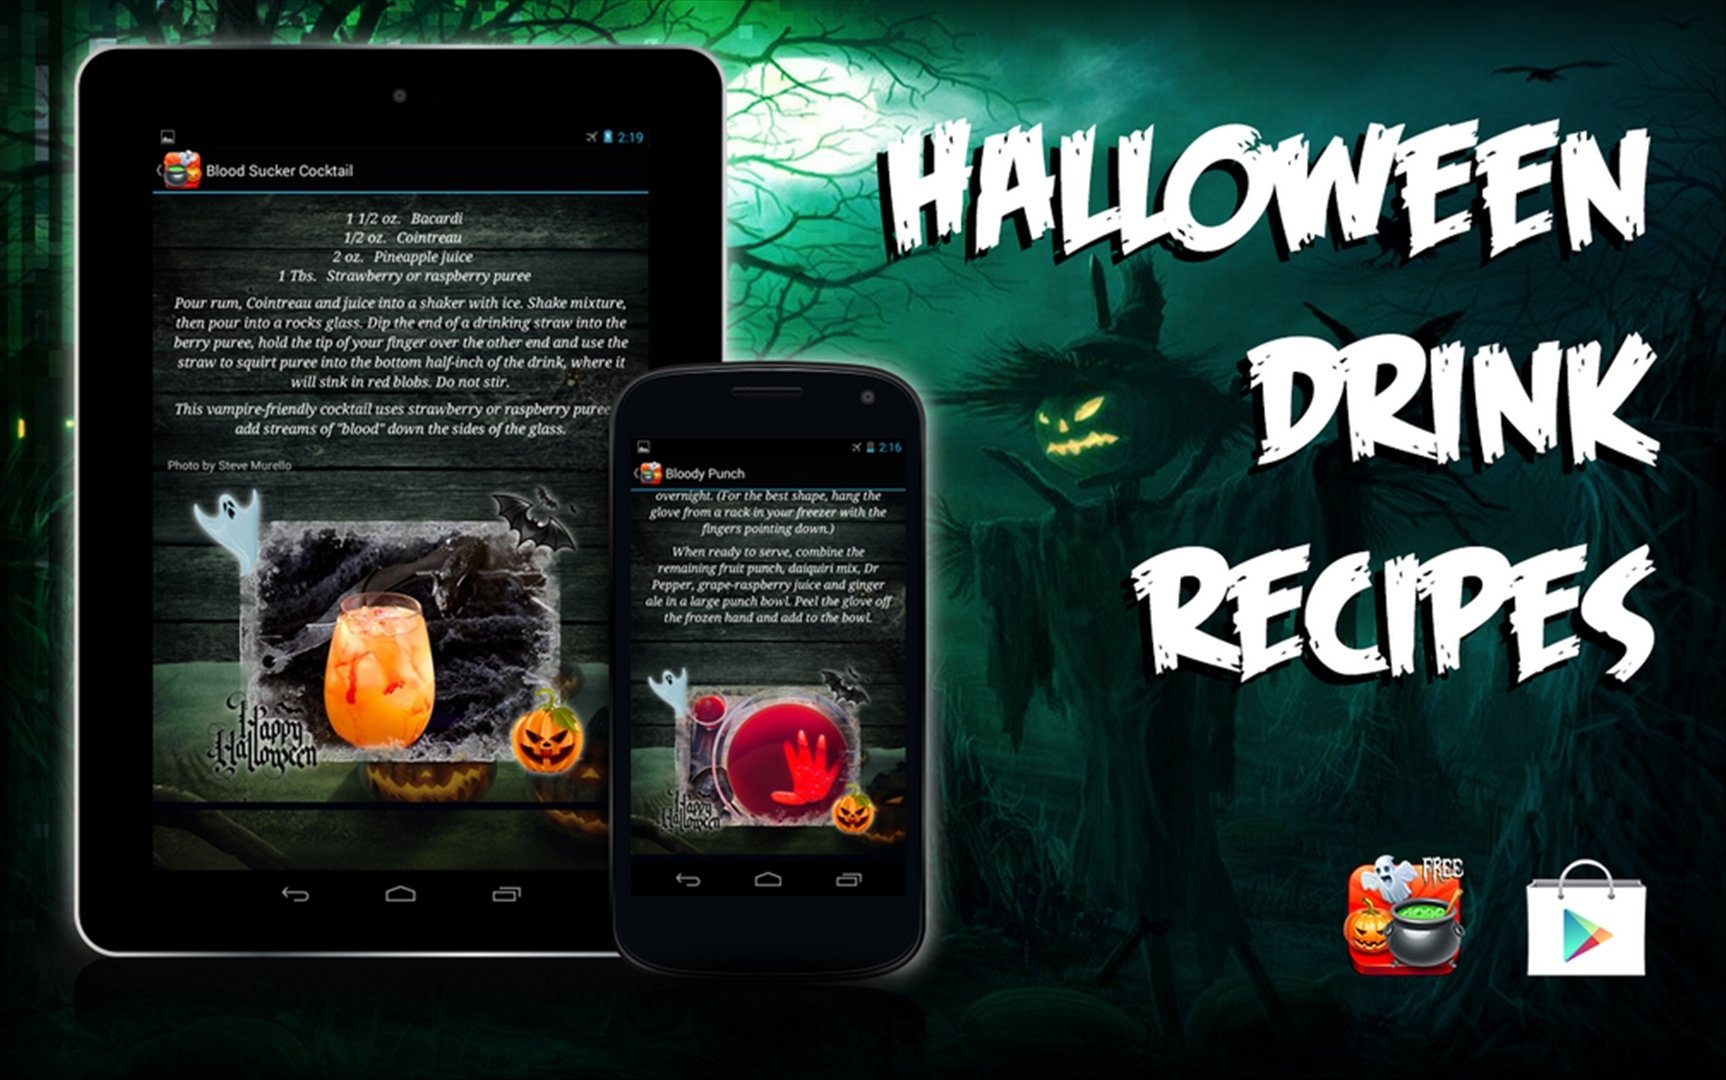 Halloween boire recettes Android image 8